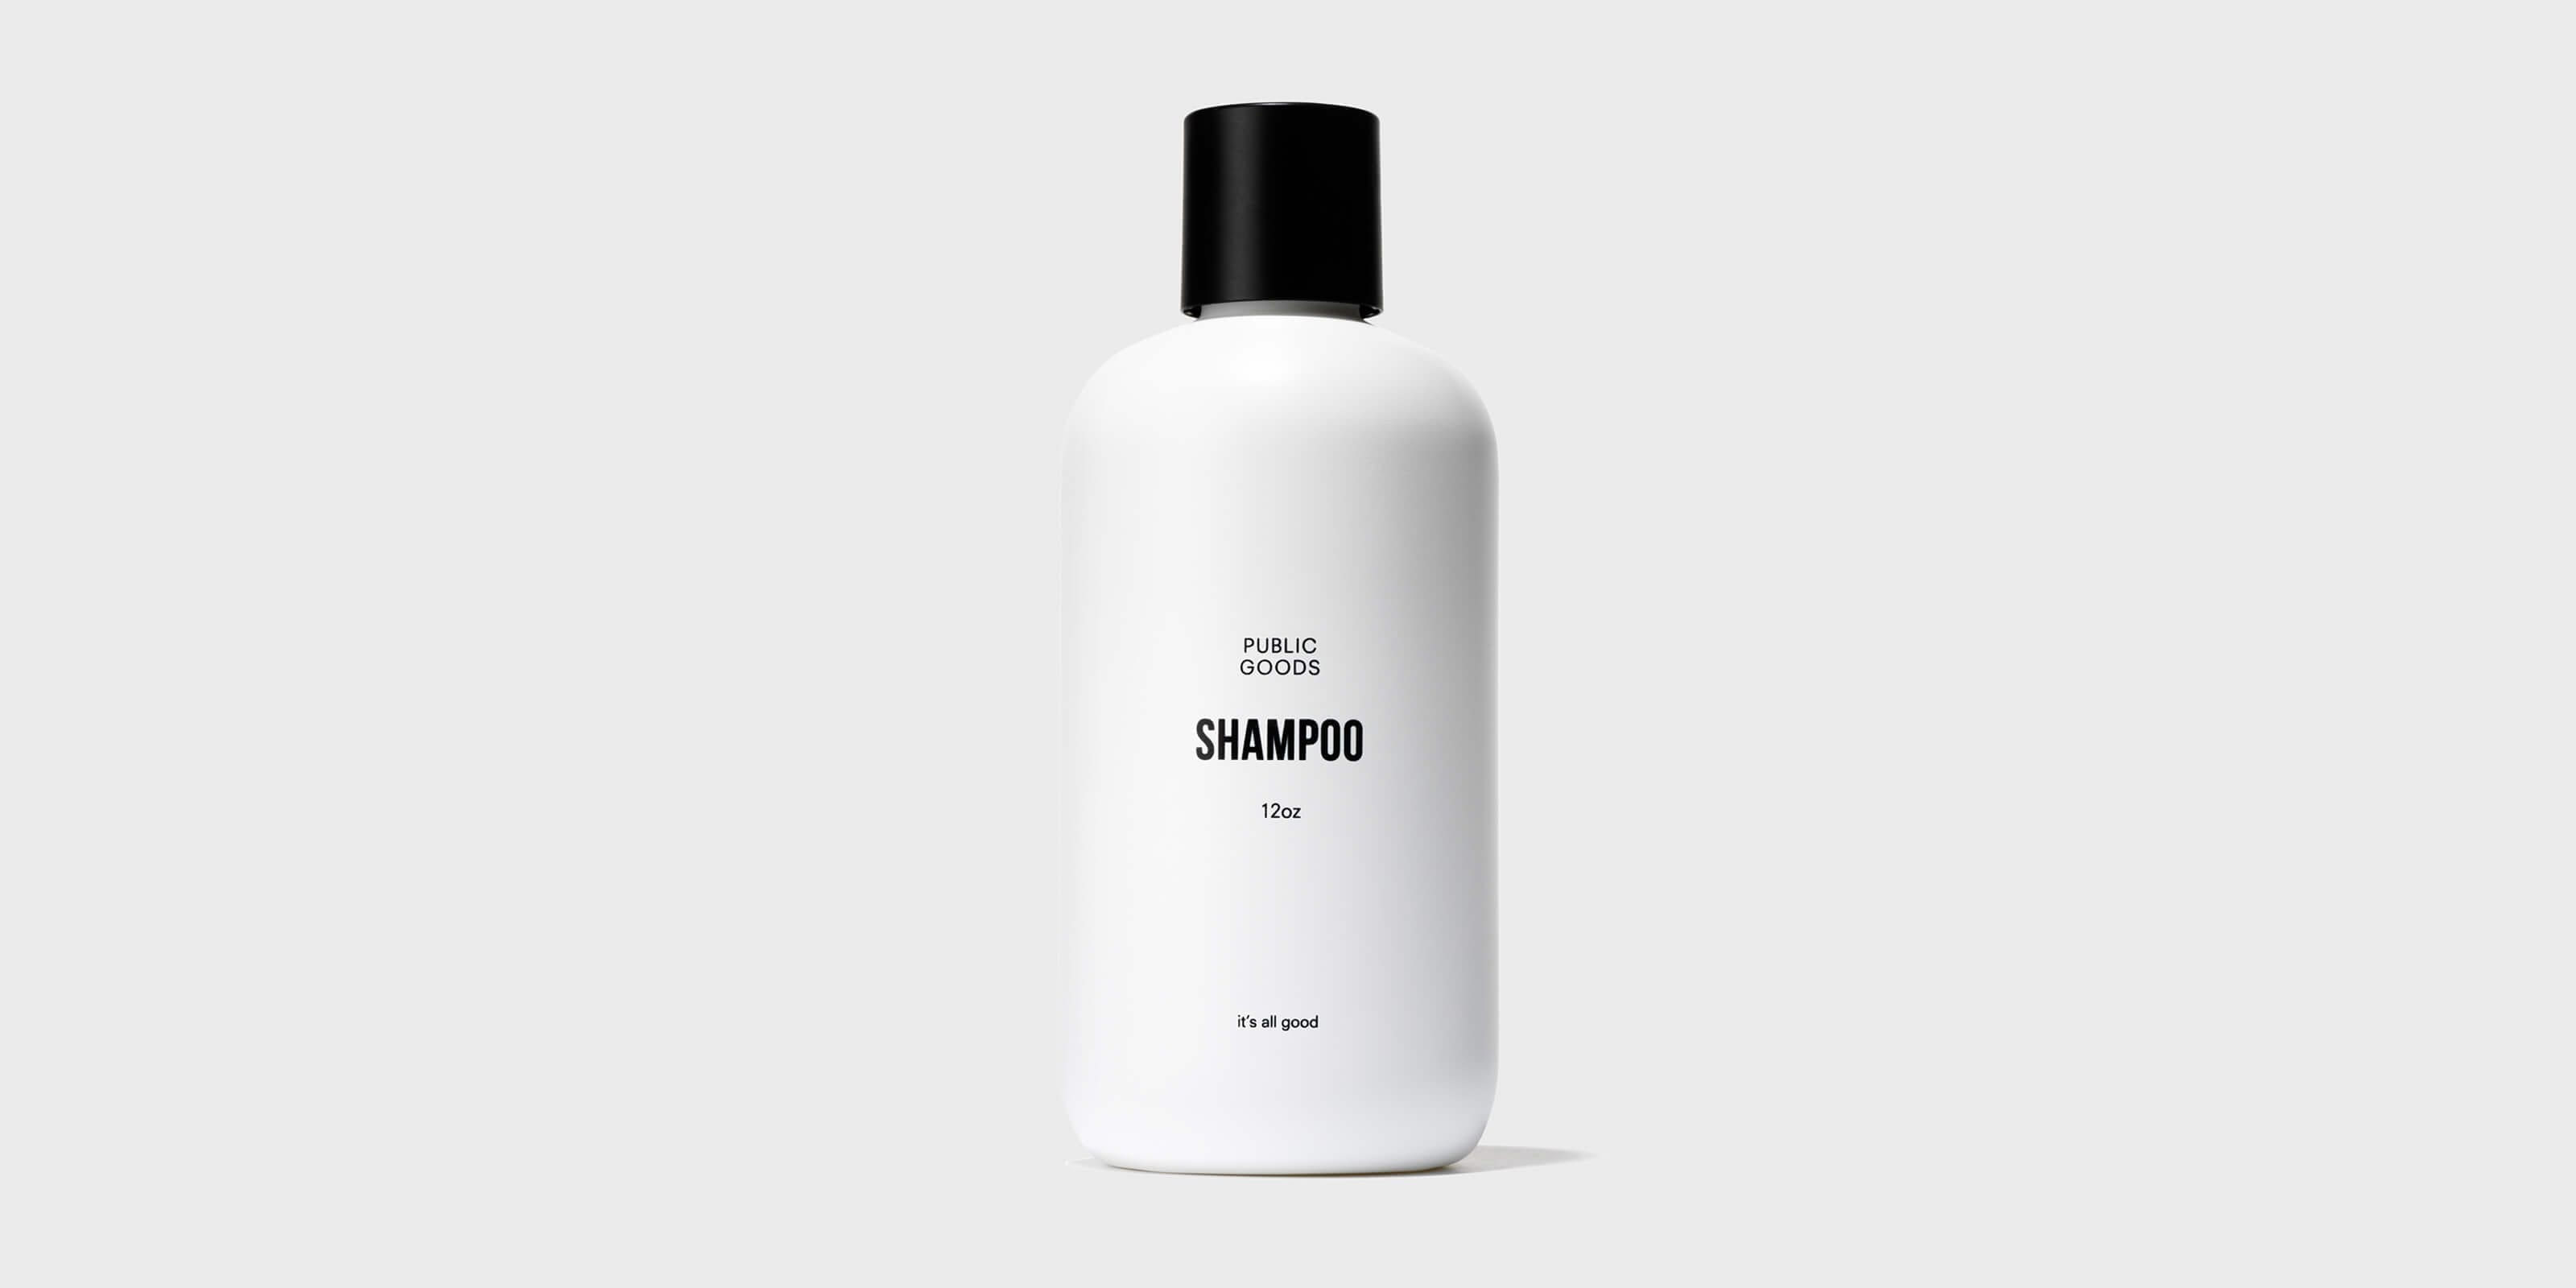 public goods shampoo bottle feature image